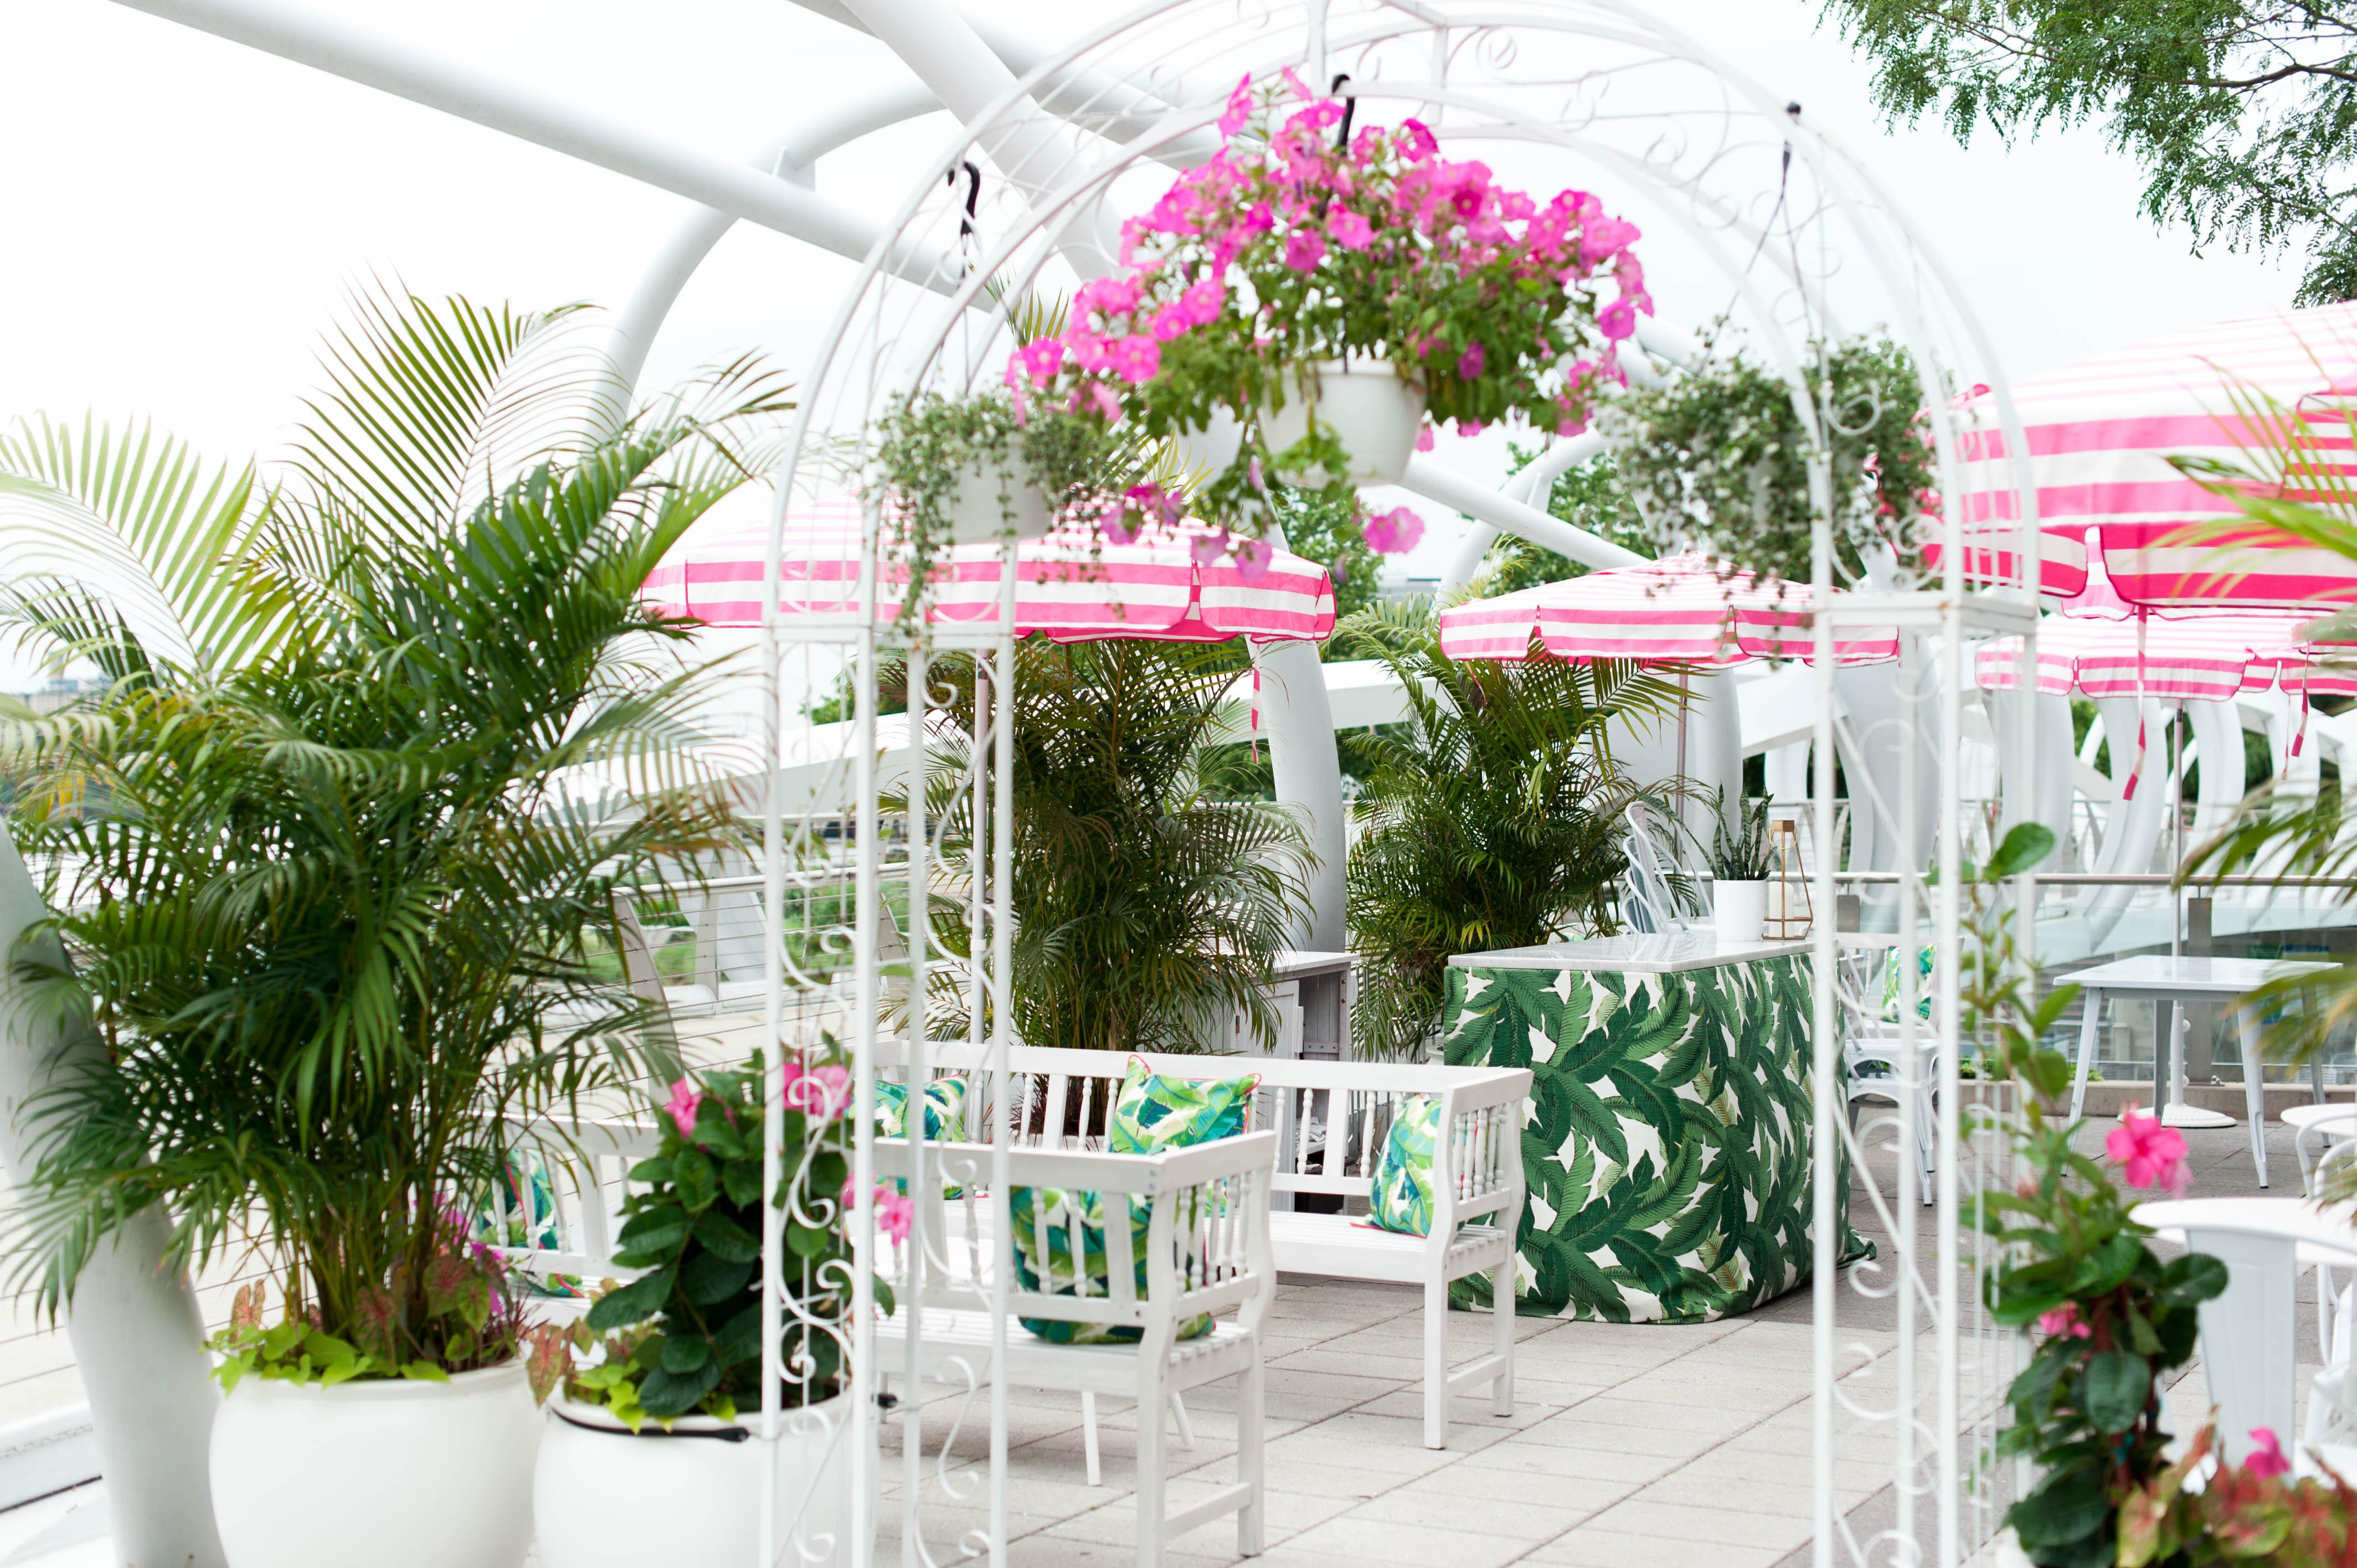 whaley's new rosé garden is the spot to #drinkpink all season long